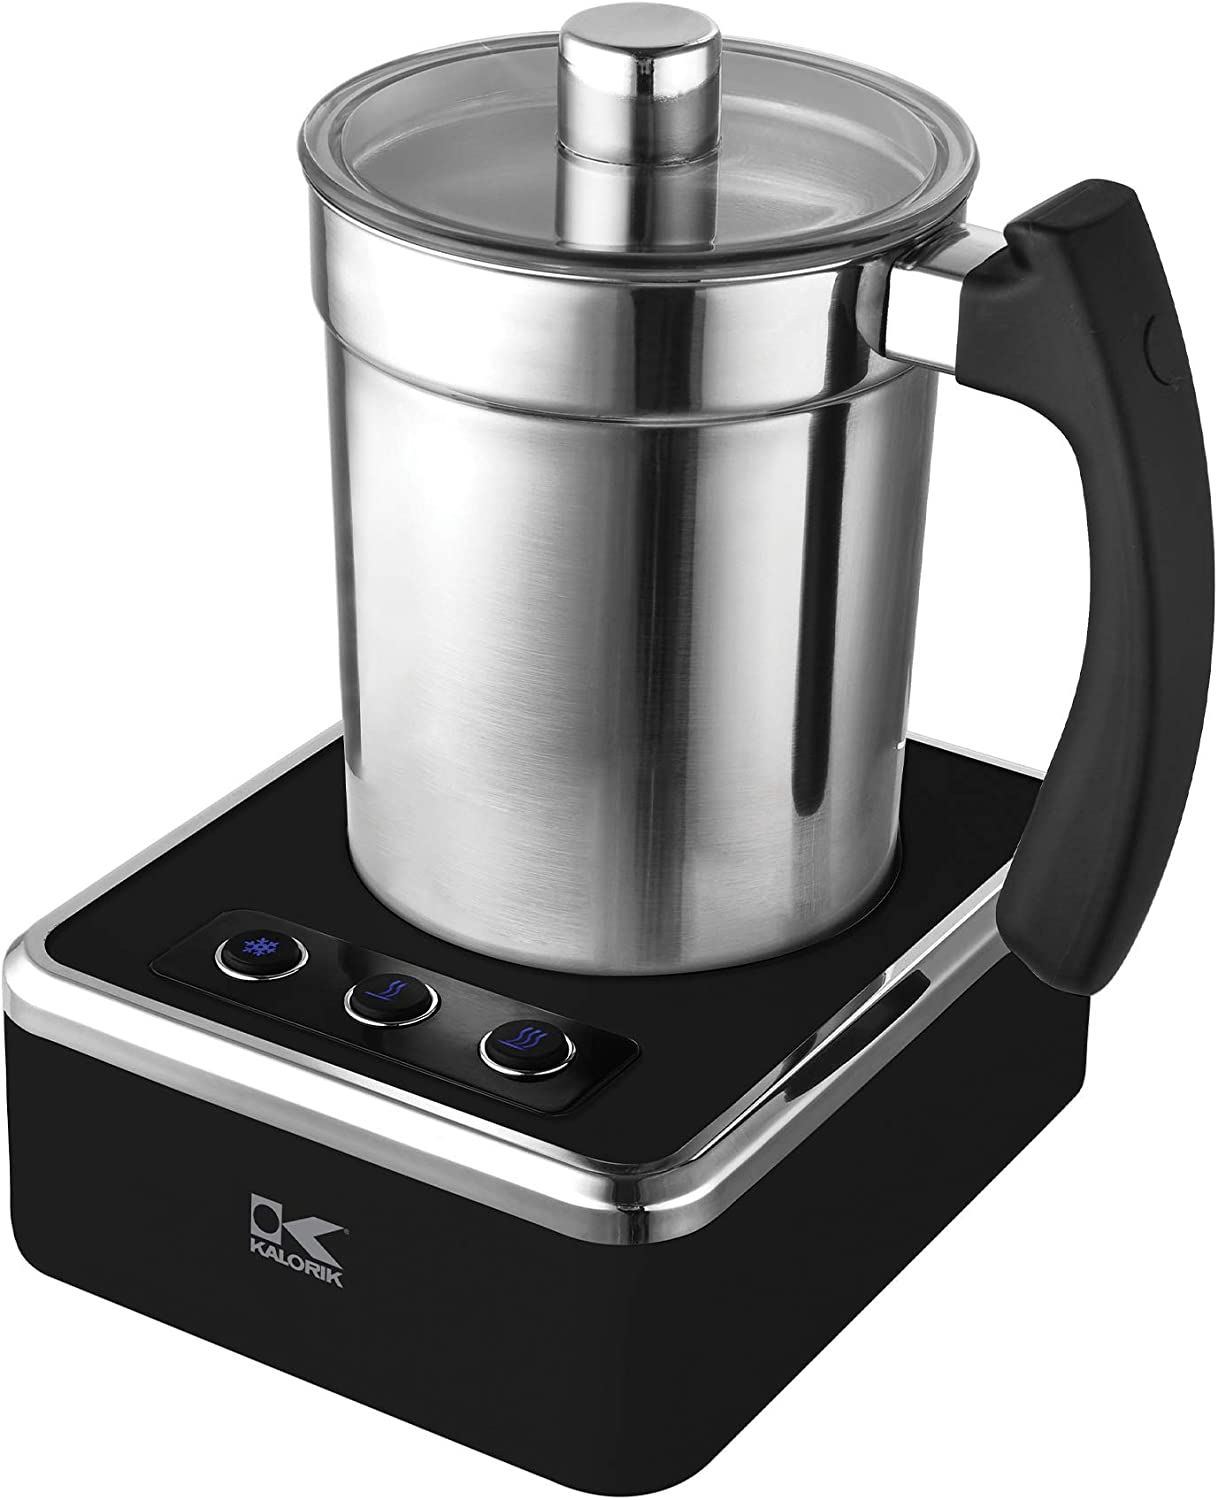 Kalorik Black and Stainless Steel Milk Frother